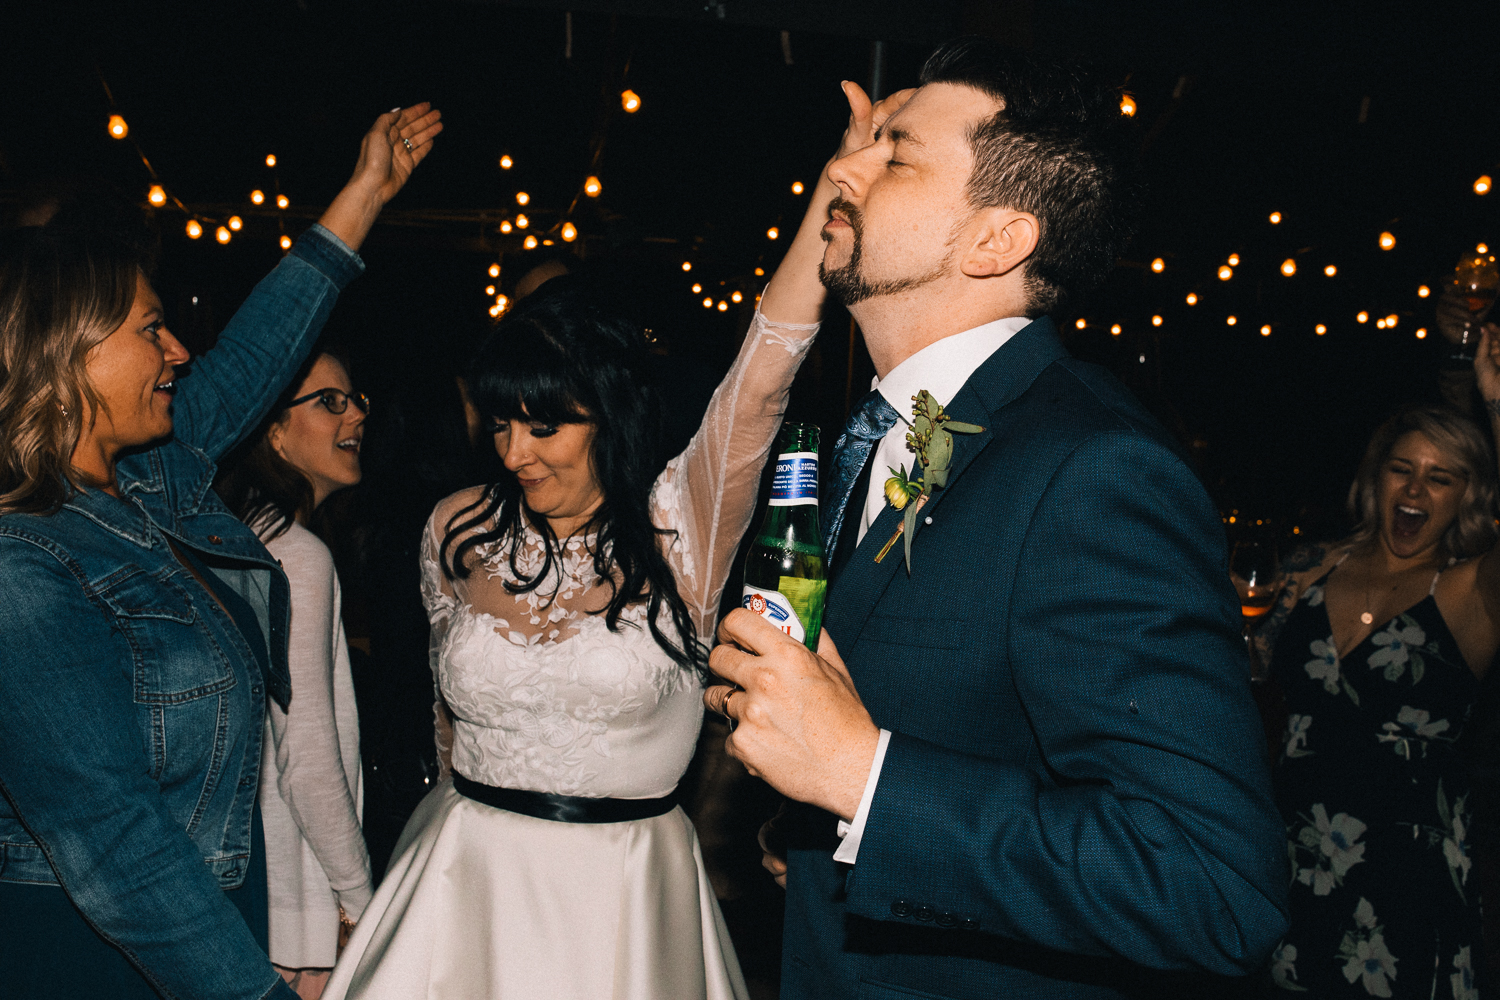 2019_05_ 182019.05.19 Lisa + Eddie South Bay Wedding Blog Photos Edited For Web 0160.jpg